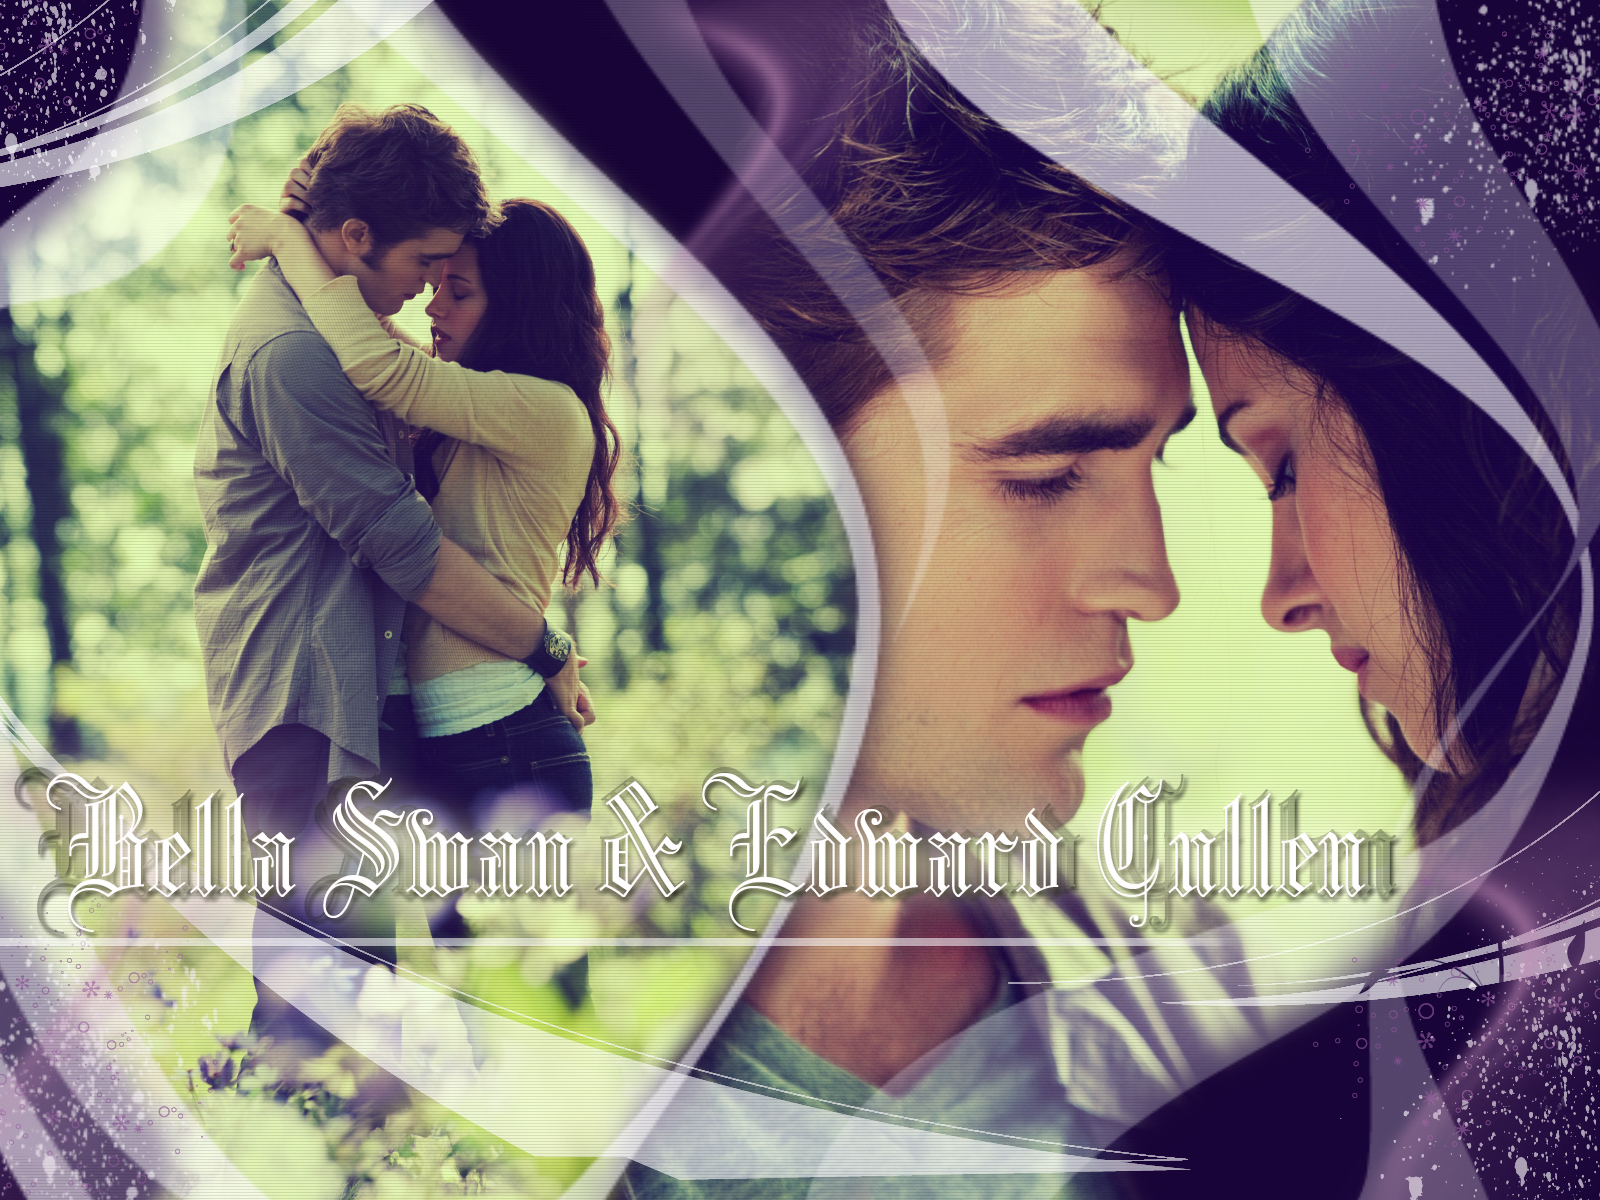 Twilight Series images Bella Swan & Edward Cullen HD wallpaper and  background photos